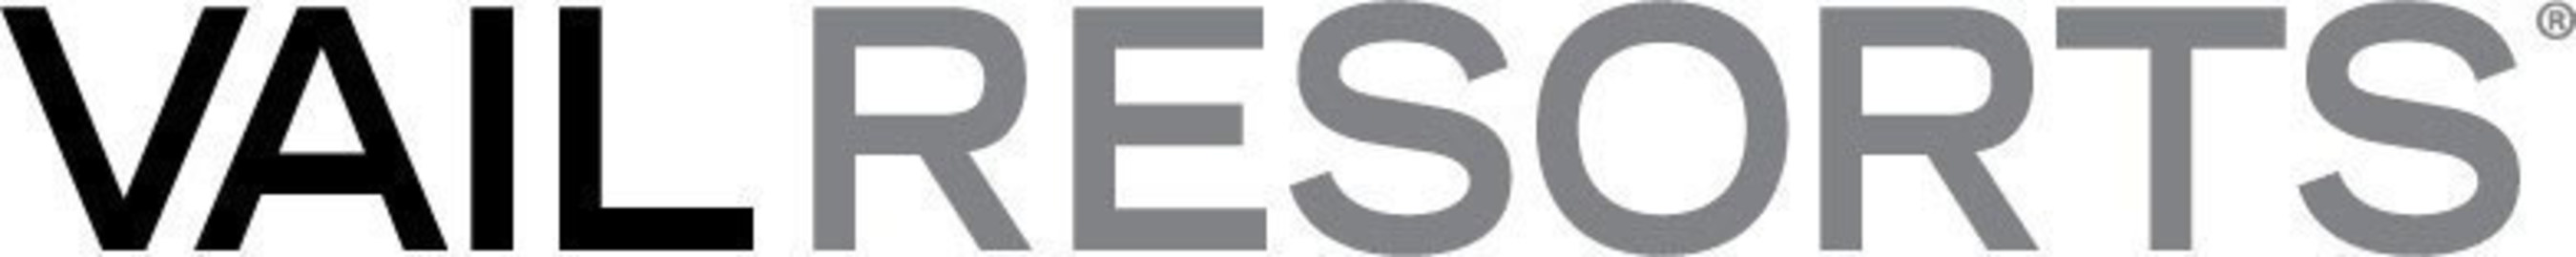 Vail Resorts, Inc. logo